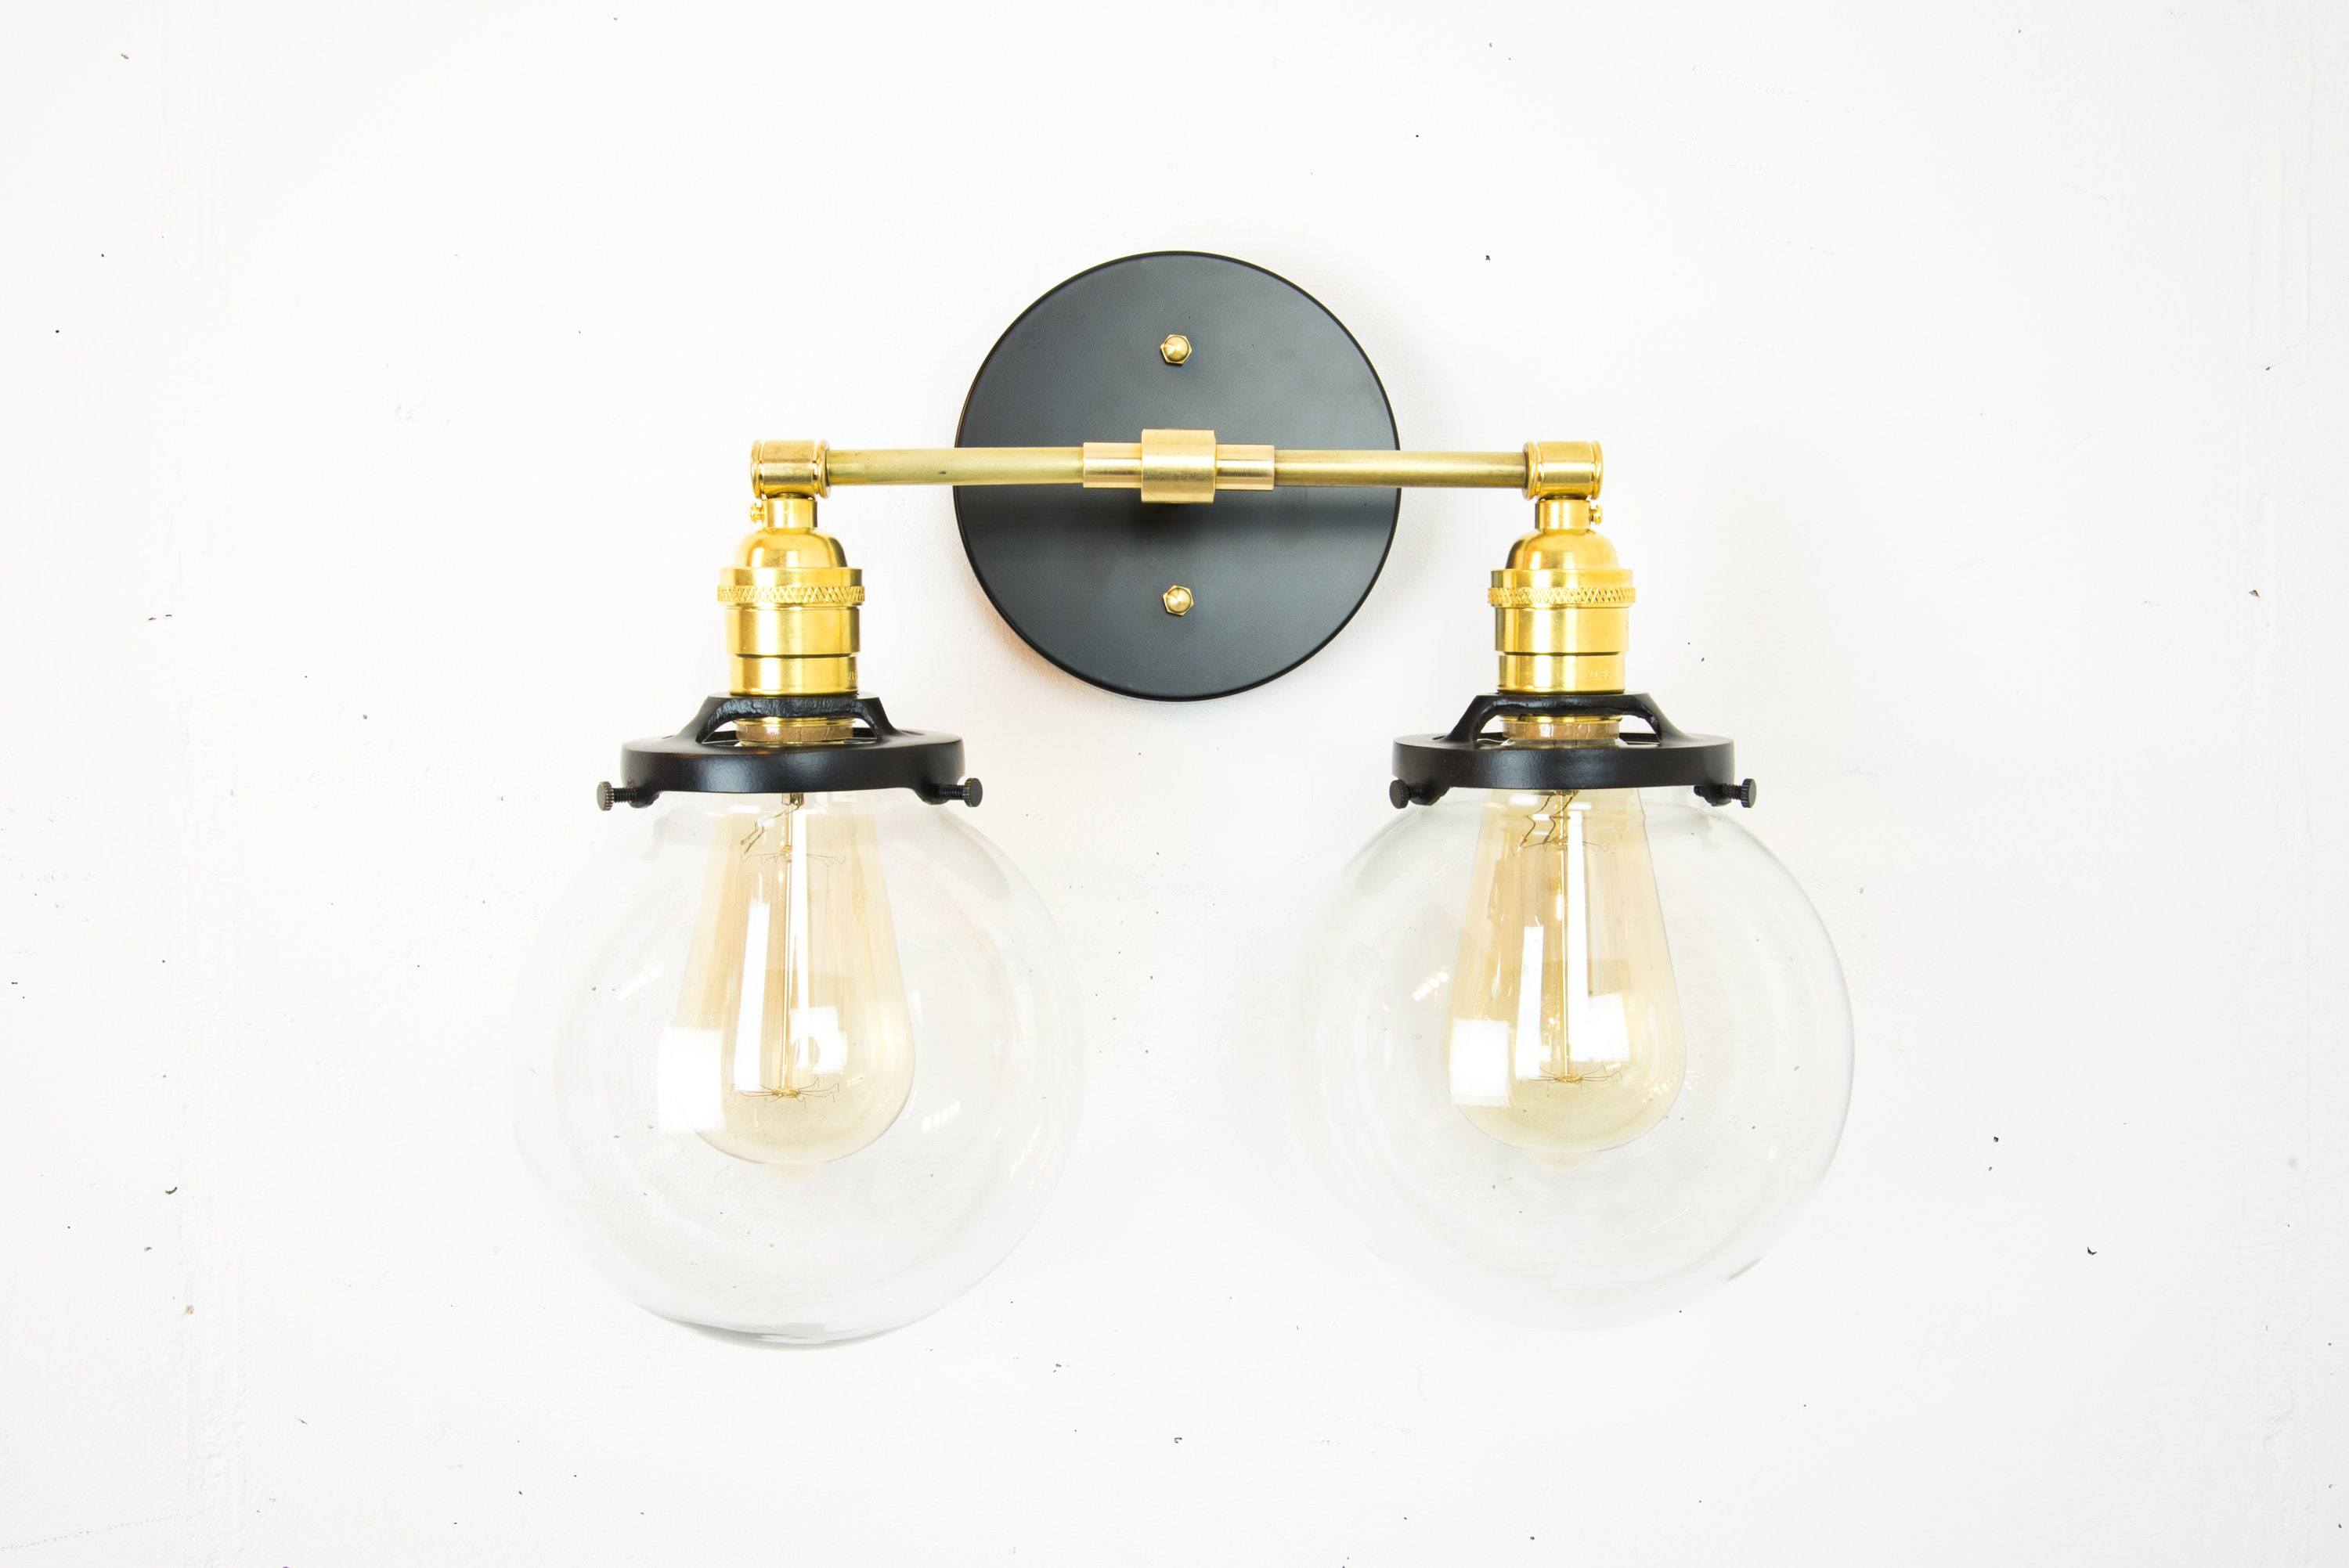 hallway plug in solar lamp swing lighting tam sconces walmart sconce hurricane style bedroom bathroom vintage sale polished horne indoor marset candle fixtures large arm bombay bulb flush lamps wall decoration shade satin for lights black double antique ornate brass light